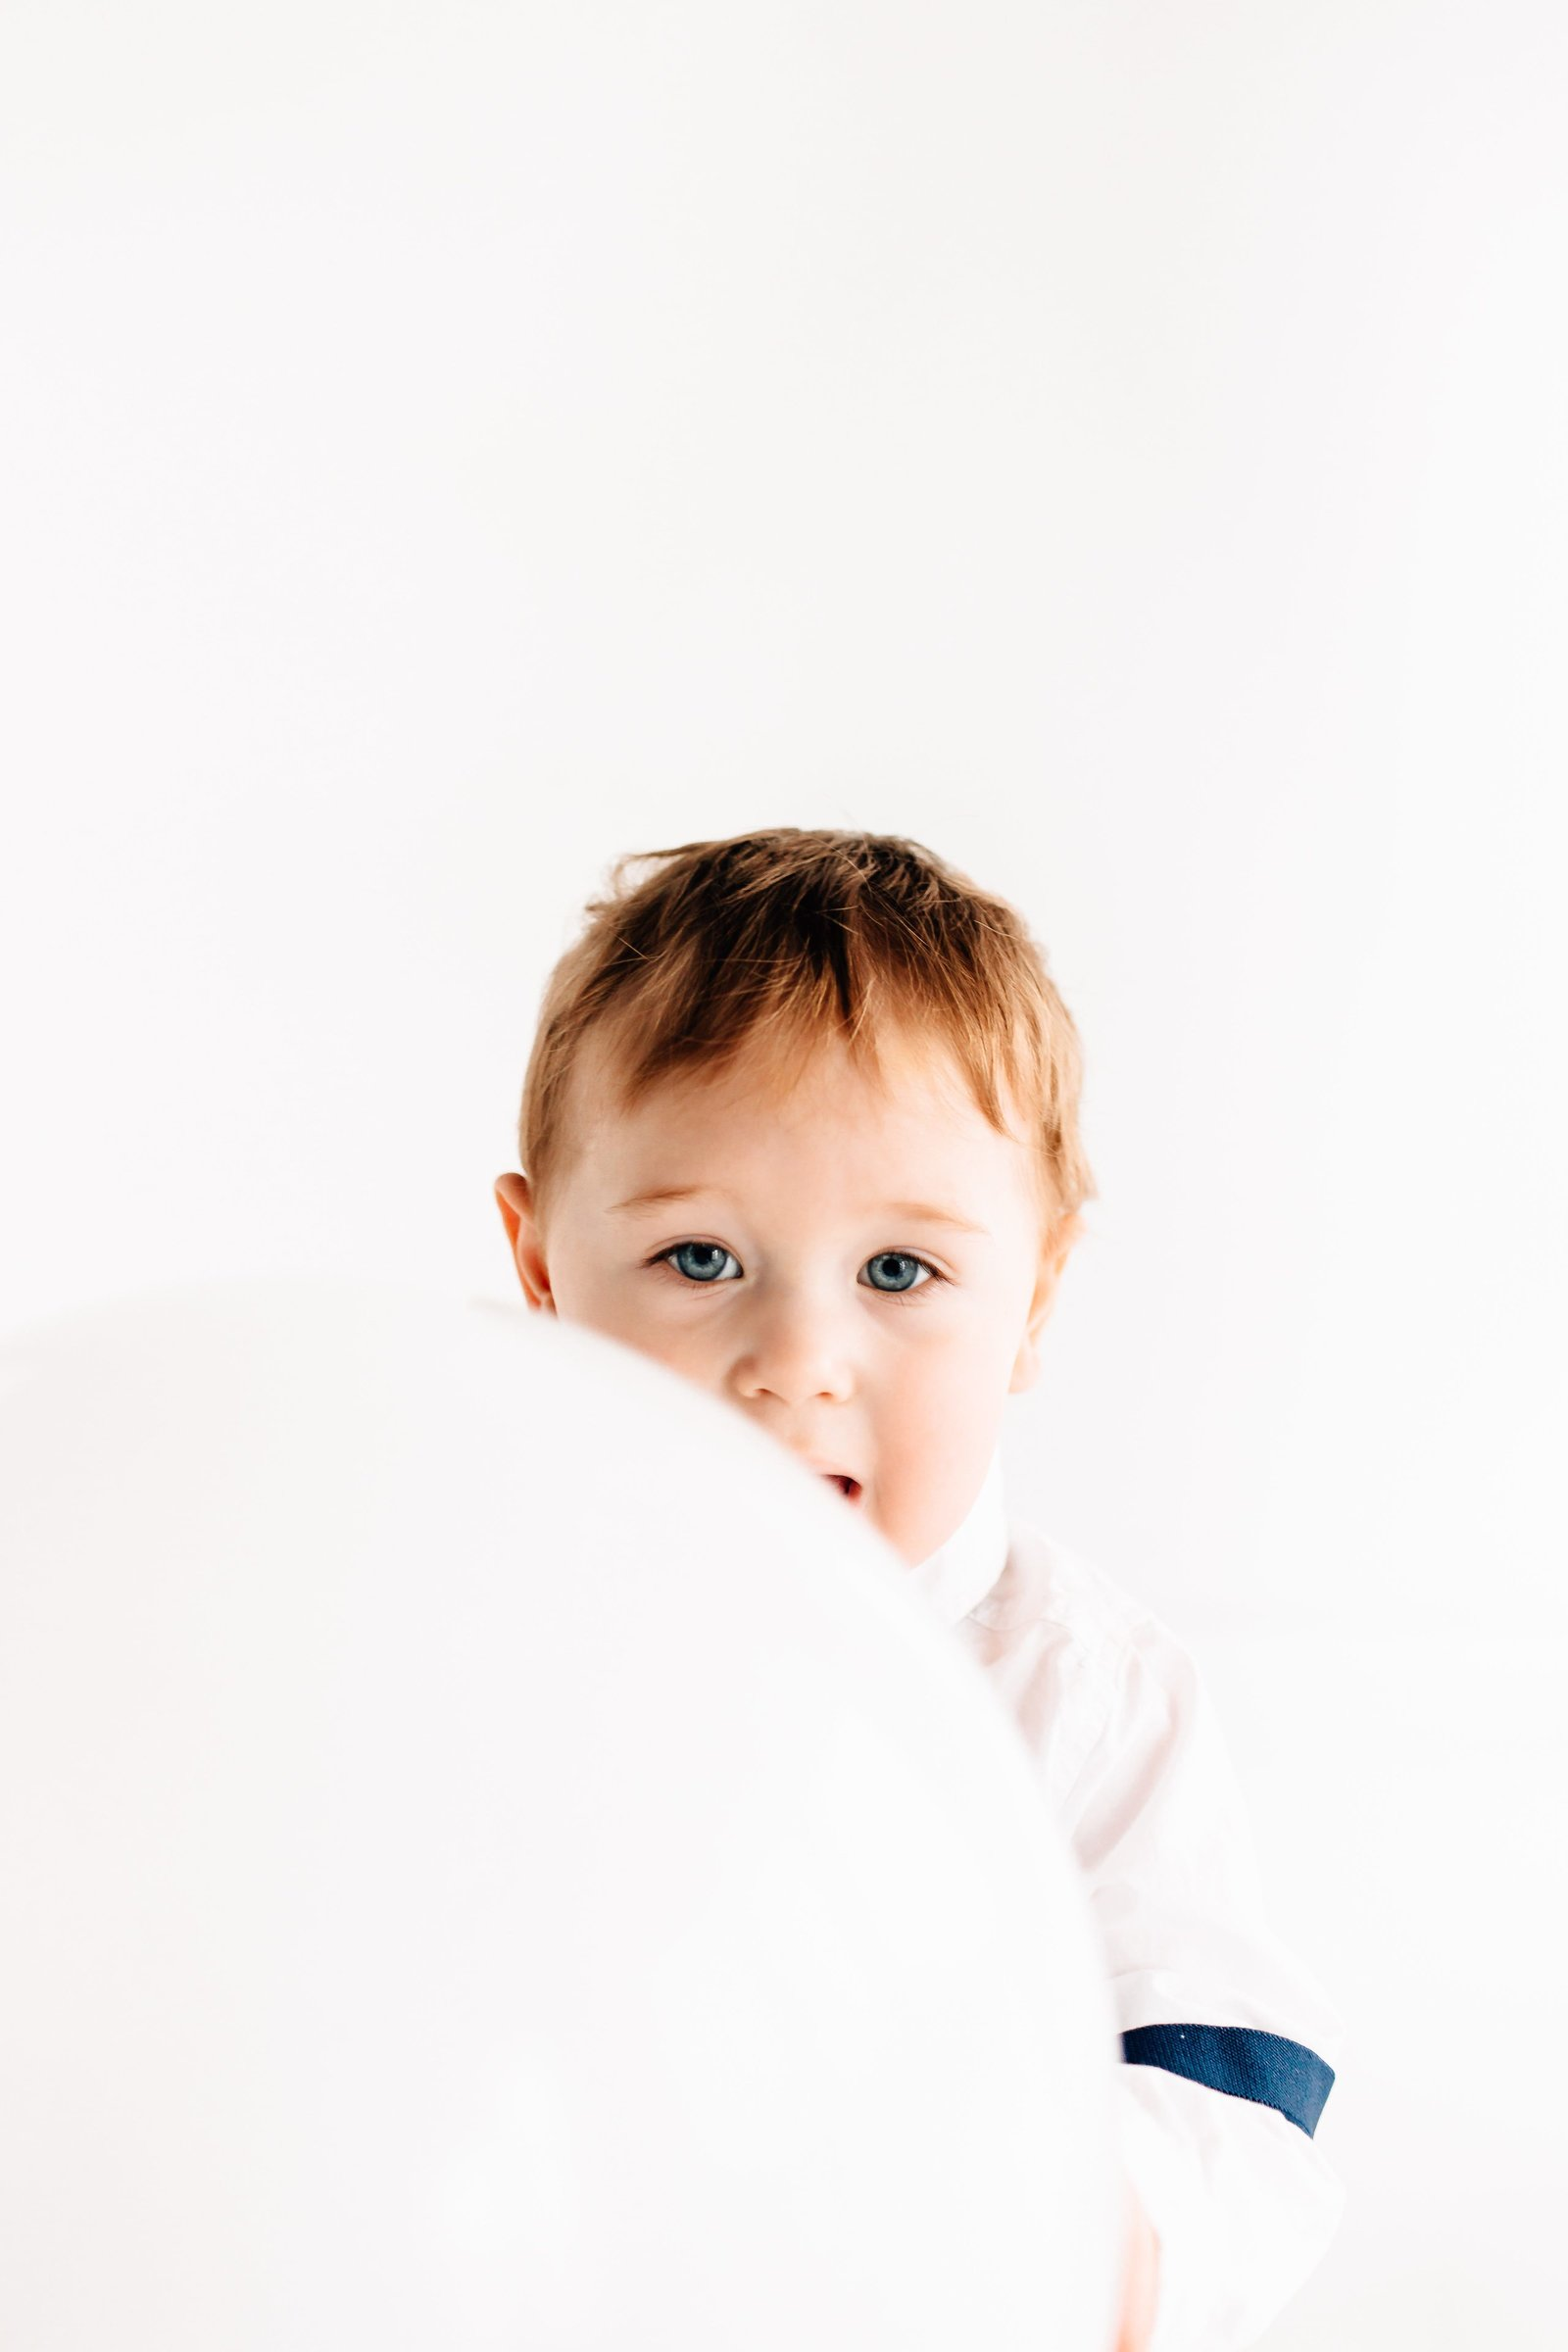 St_Louis_Baby_Photographer_Kelly_Laramore_Photography_28